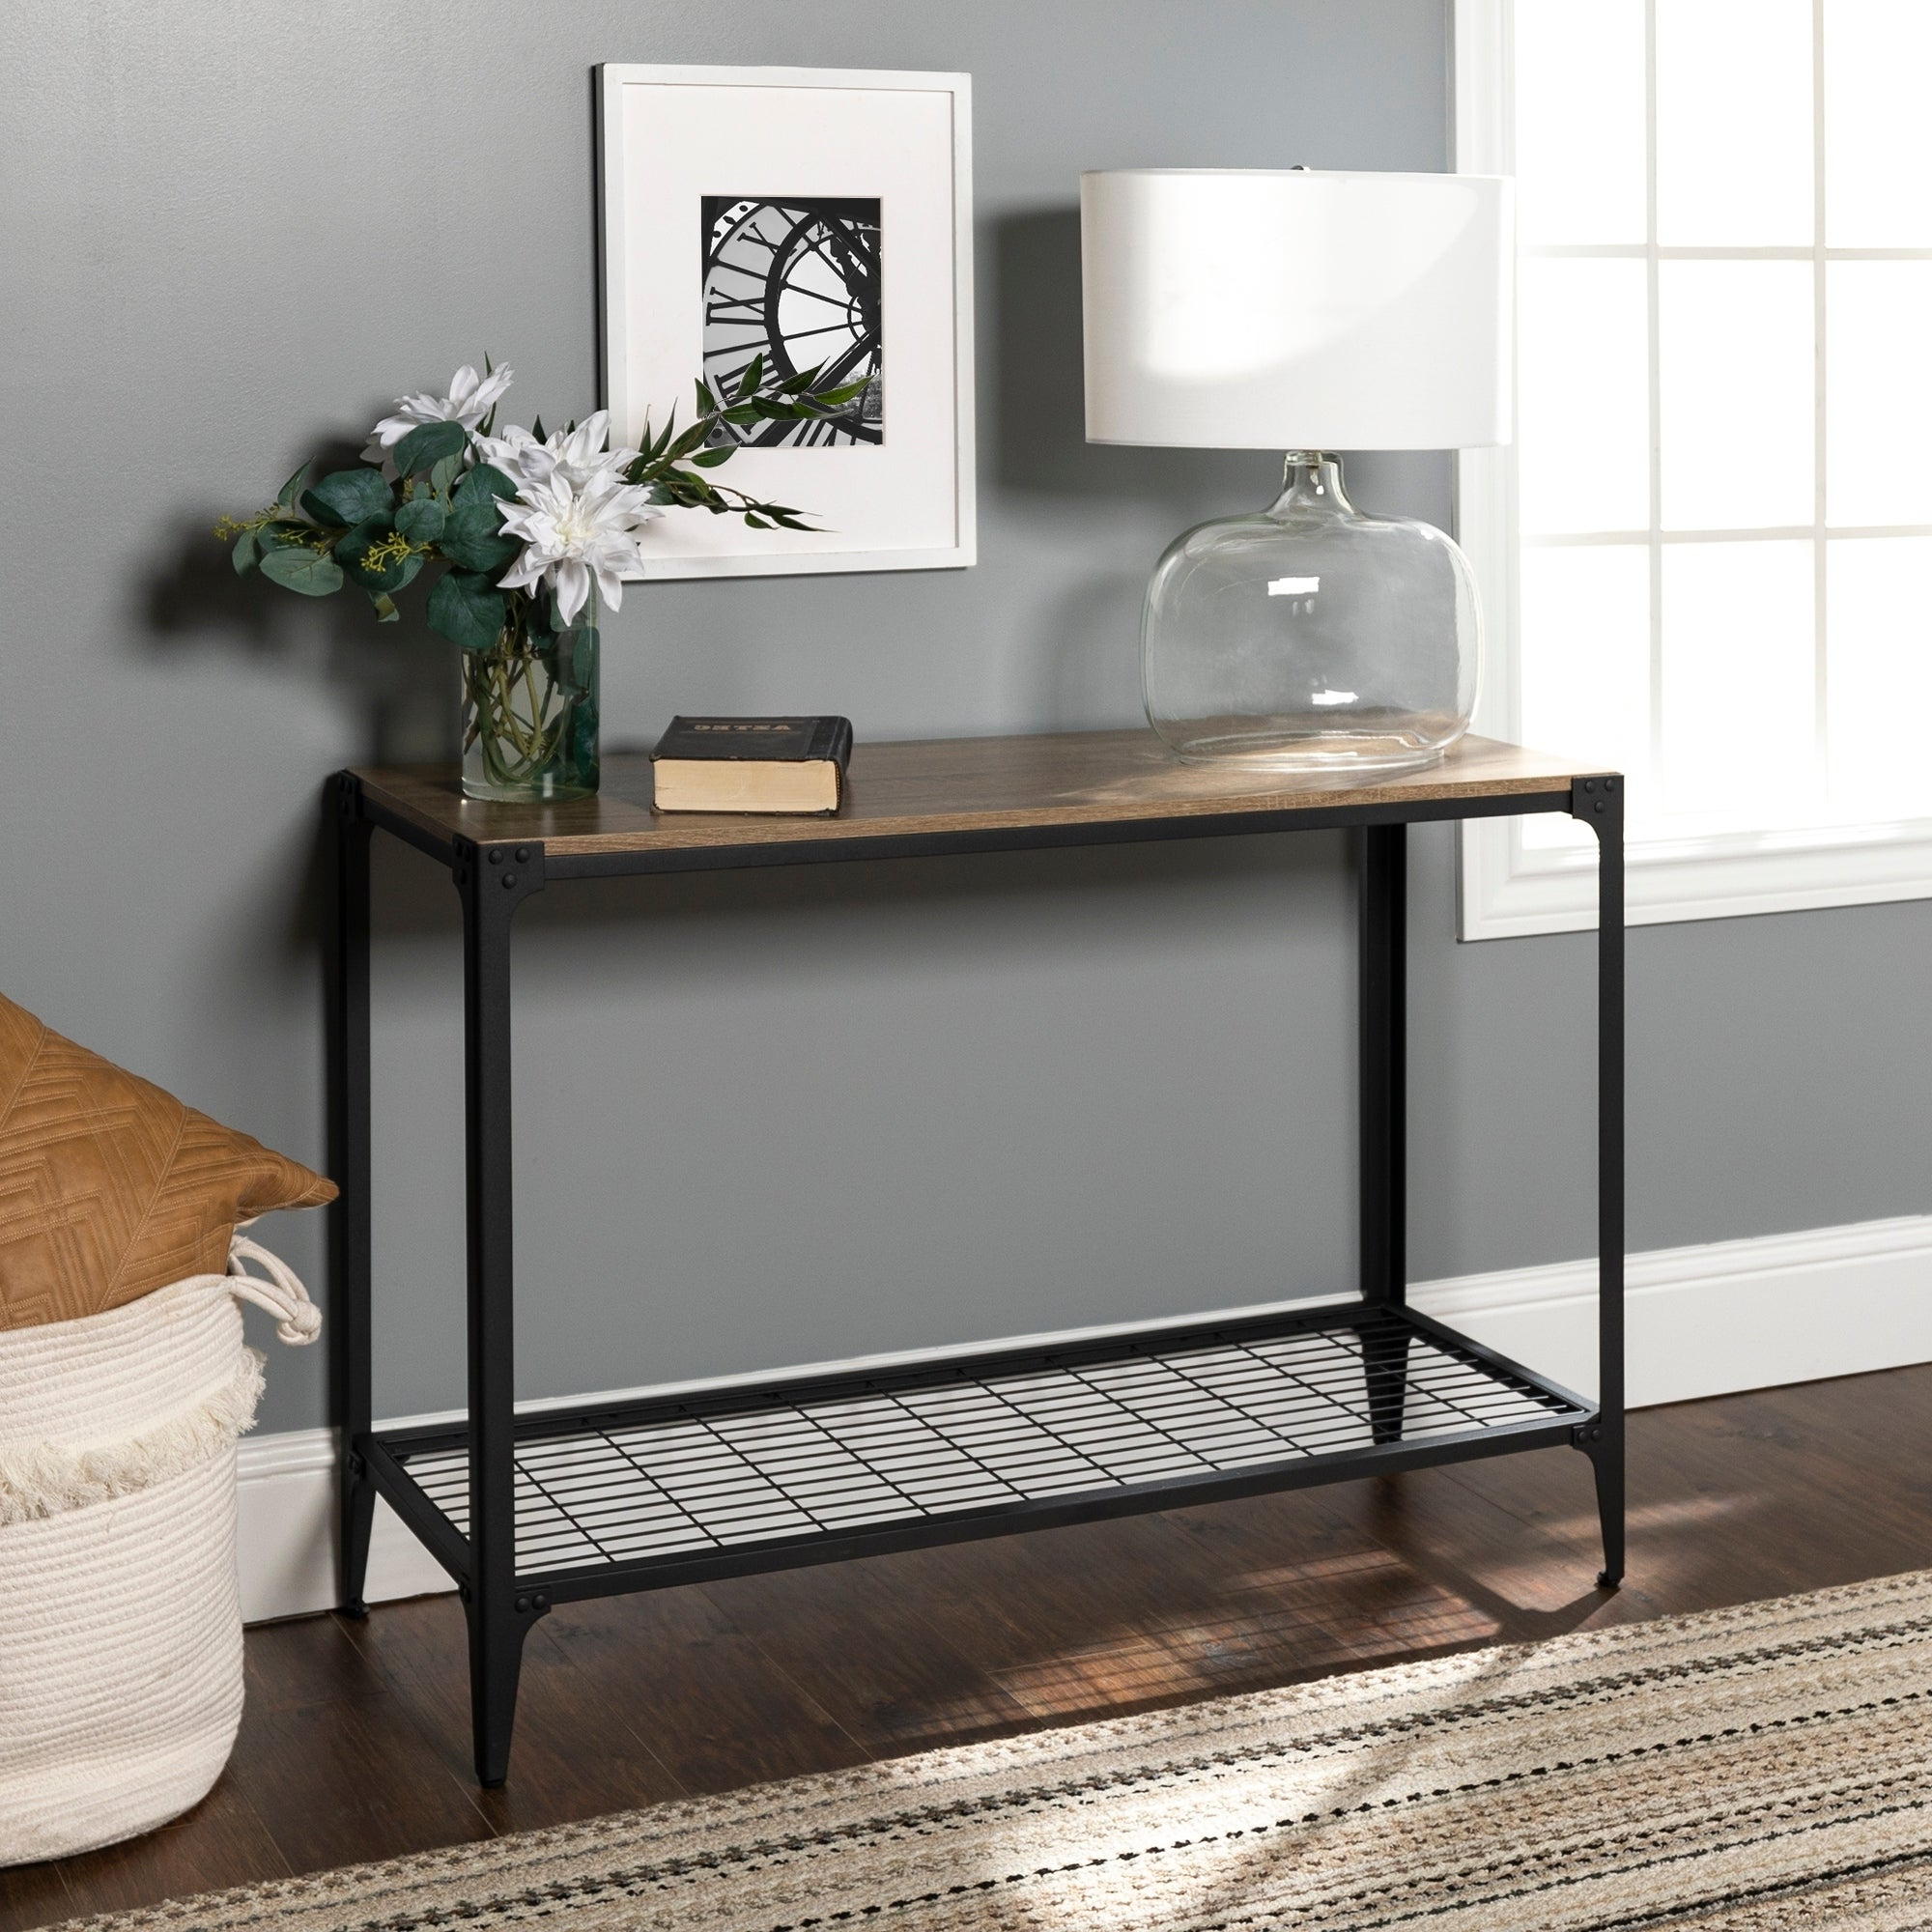 2020 Carbon Loft Witten Angle Iron And Driftwood Coffee Tables Pertaining To Carbon Loft Witten Angle Iron And Driftwood Entry Table – 44 X 16 X 30H (View 1 of 20)